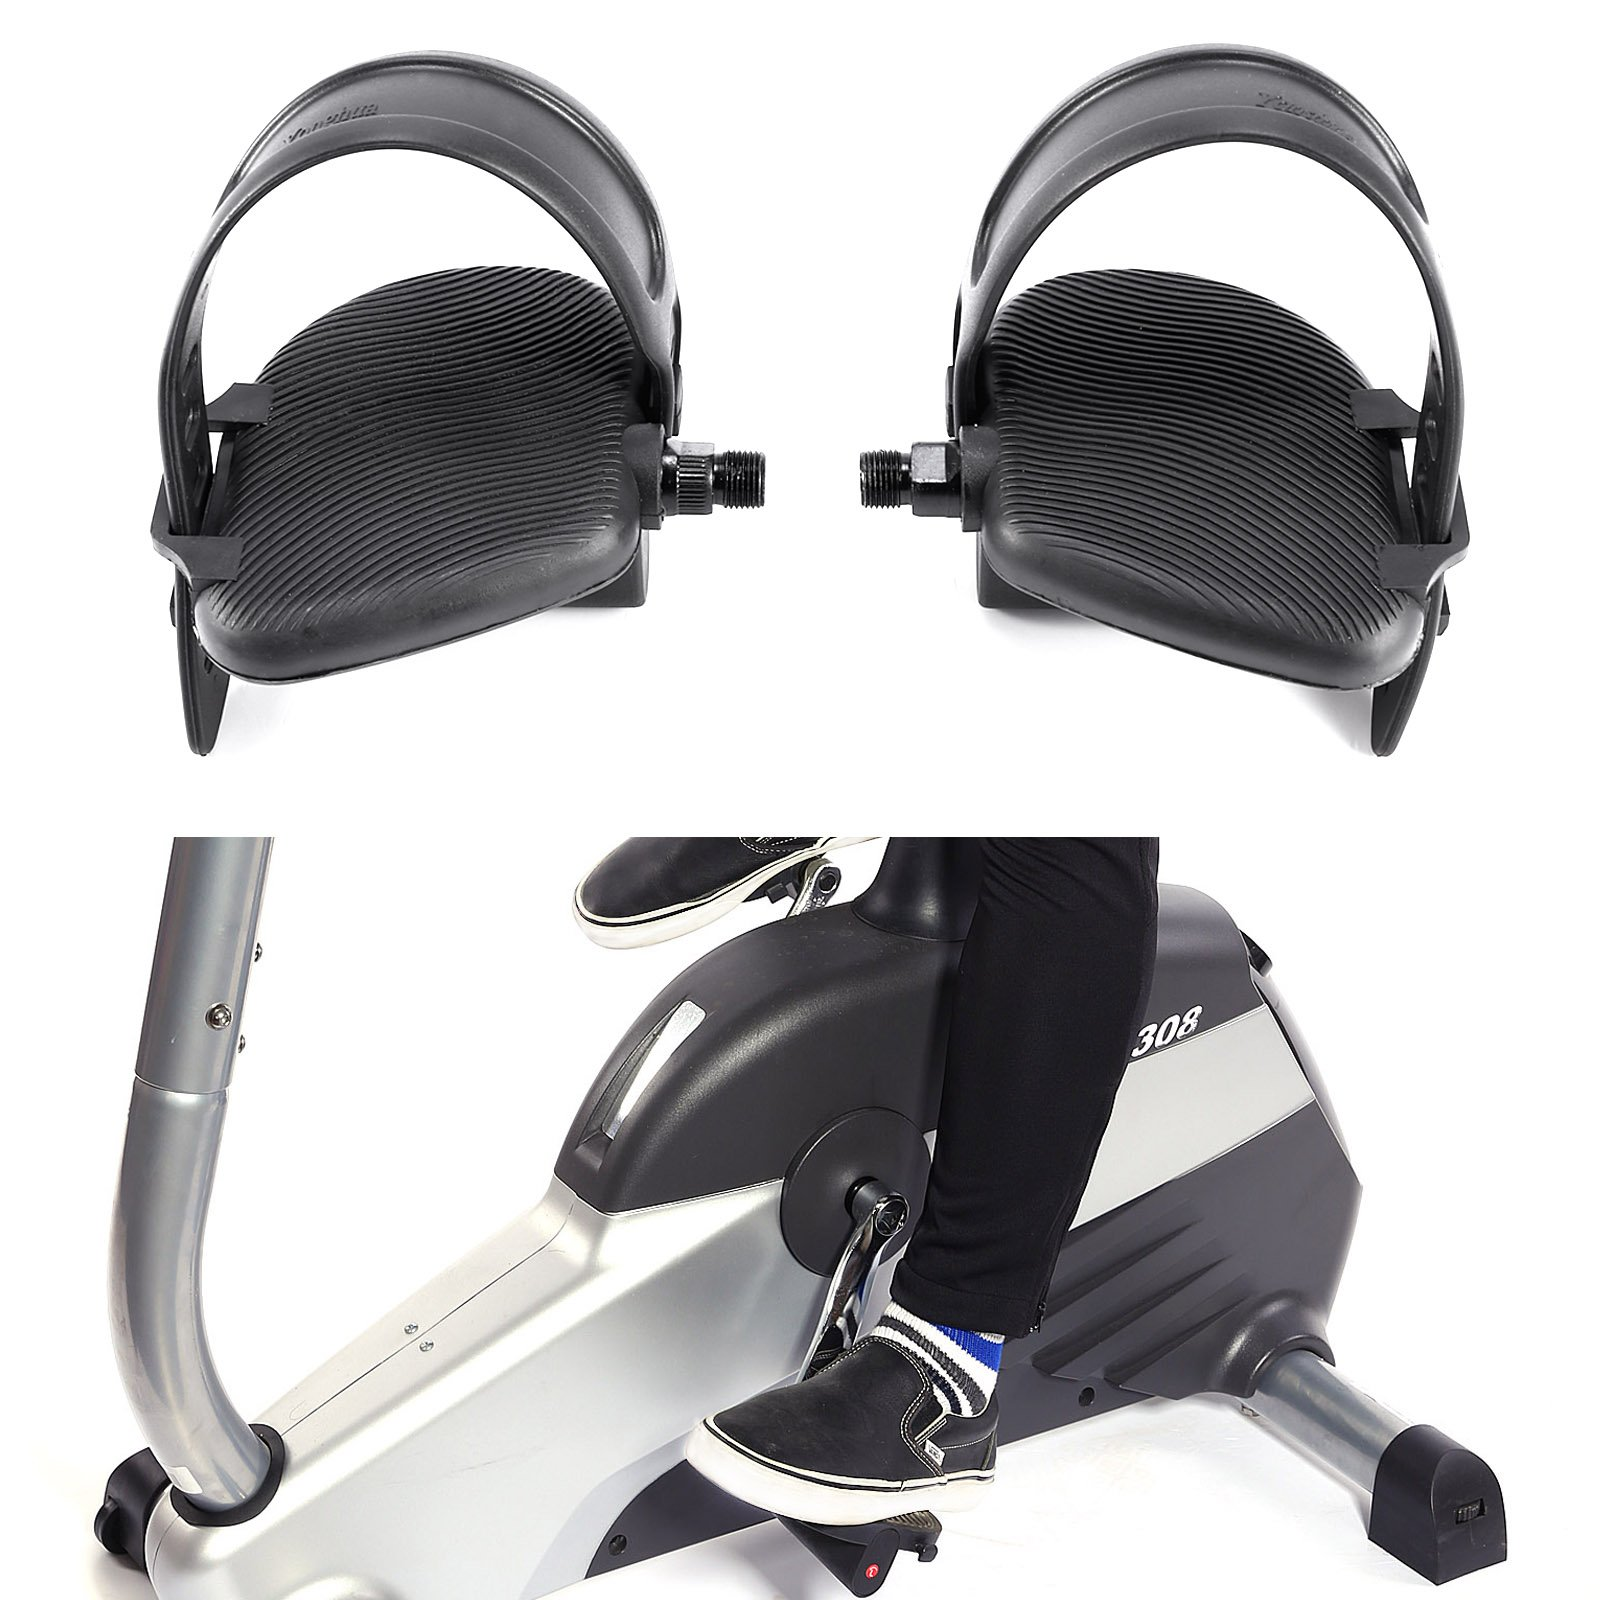 After Market Replacement for OEM# AK63-00124-0001 LIFE Fitness BIKE Pedals 9//16 Shaft Size SB Distribution Ltd. AK63-00263-0004 PAIR - L+R With Adjustable Strap AK63-00123-0003 Left+Right